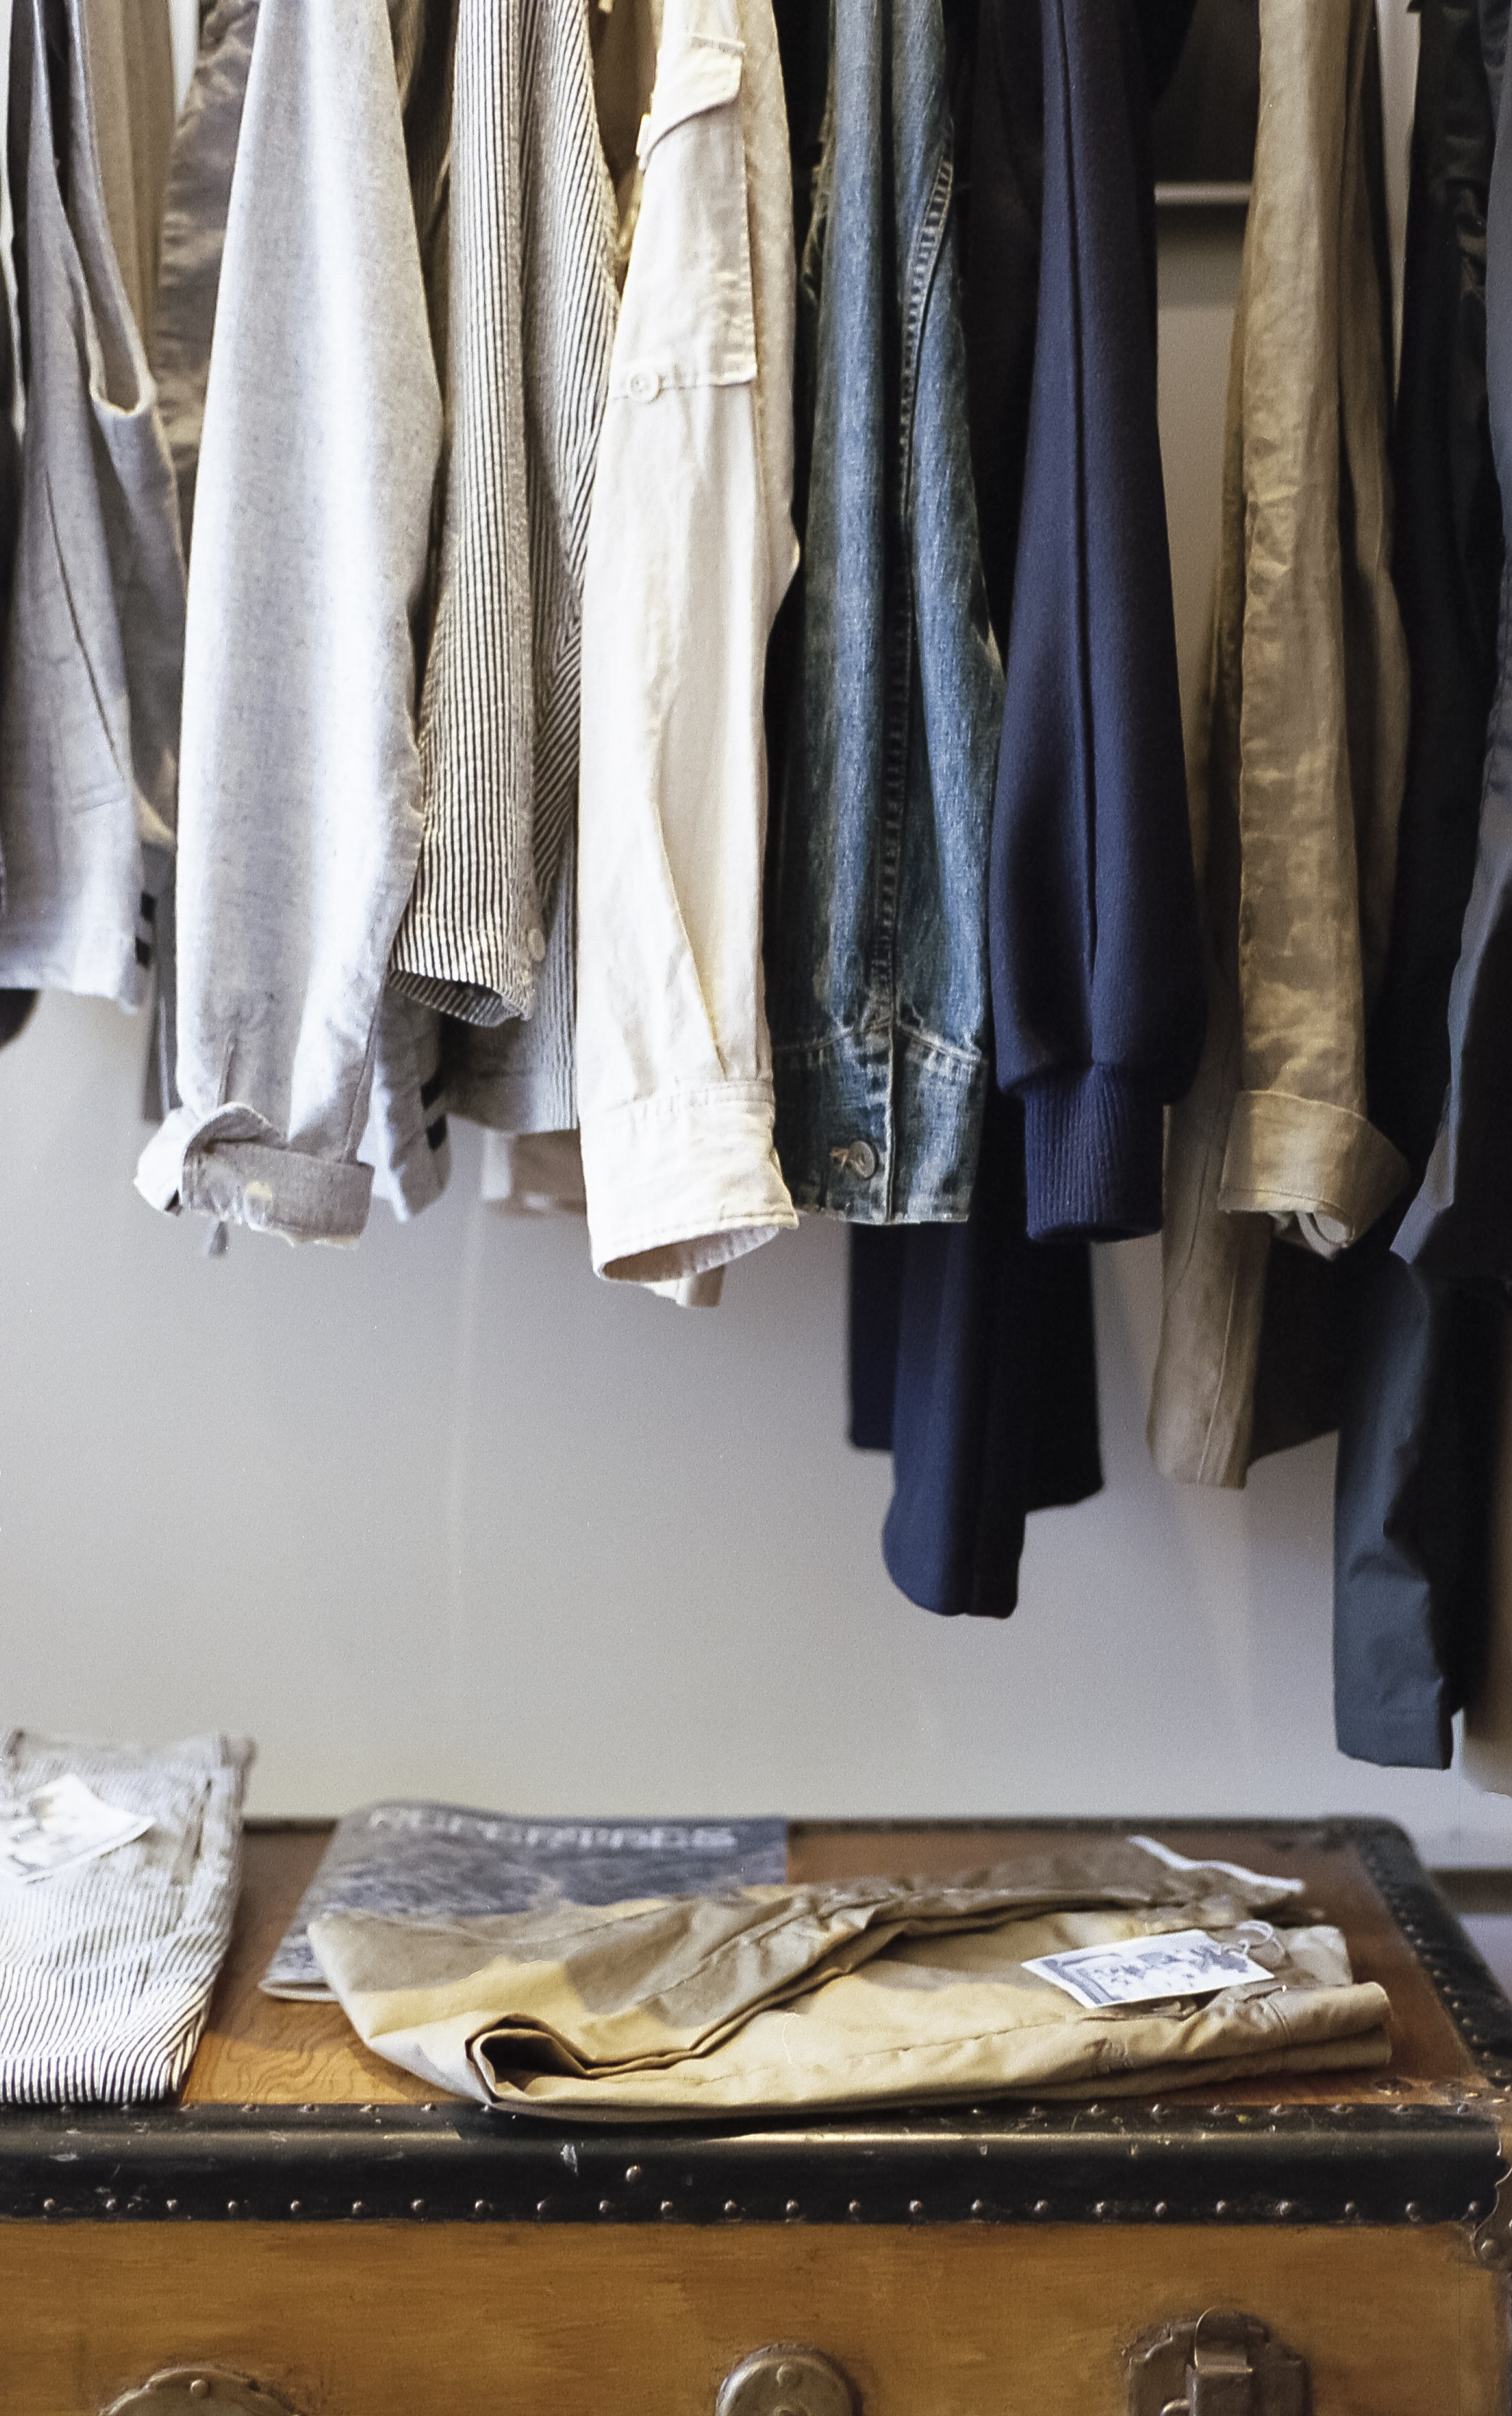 Shirts and jackets on hangers over a chest